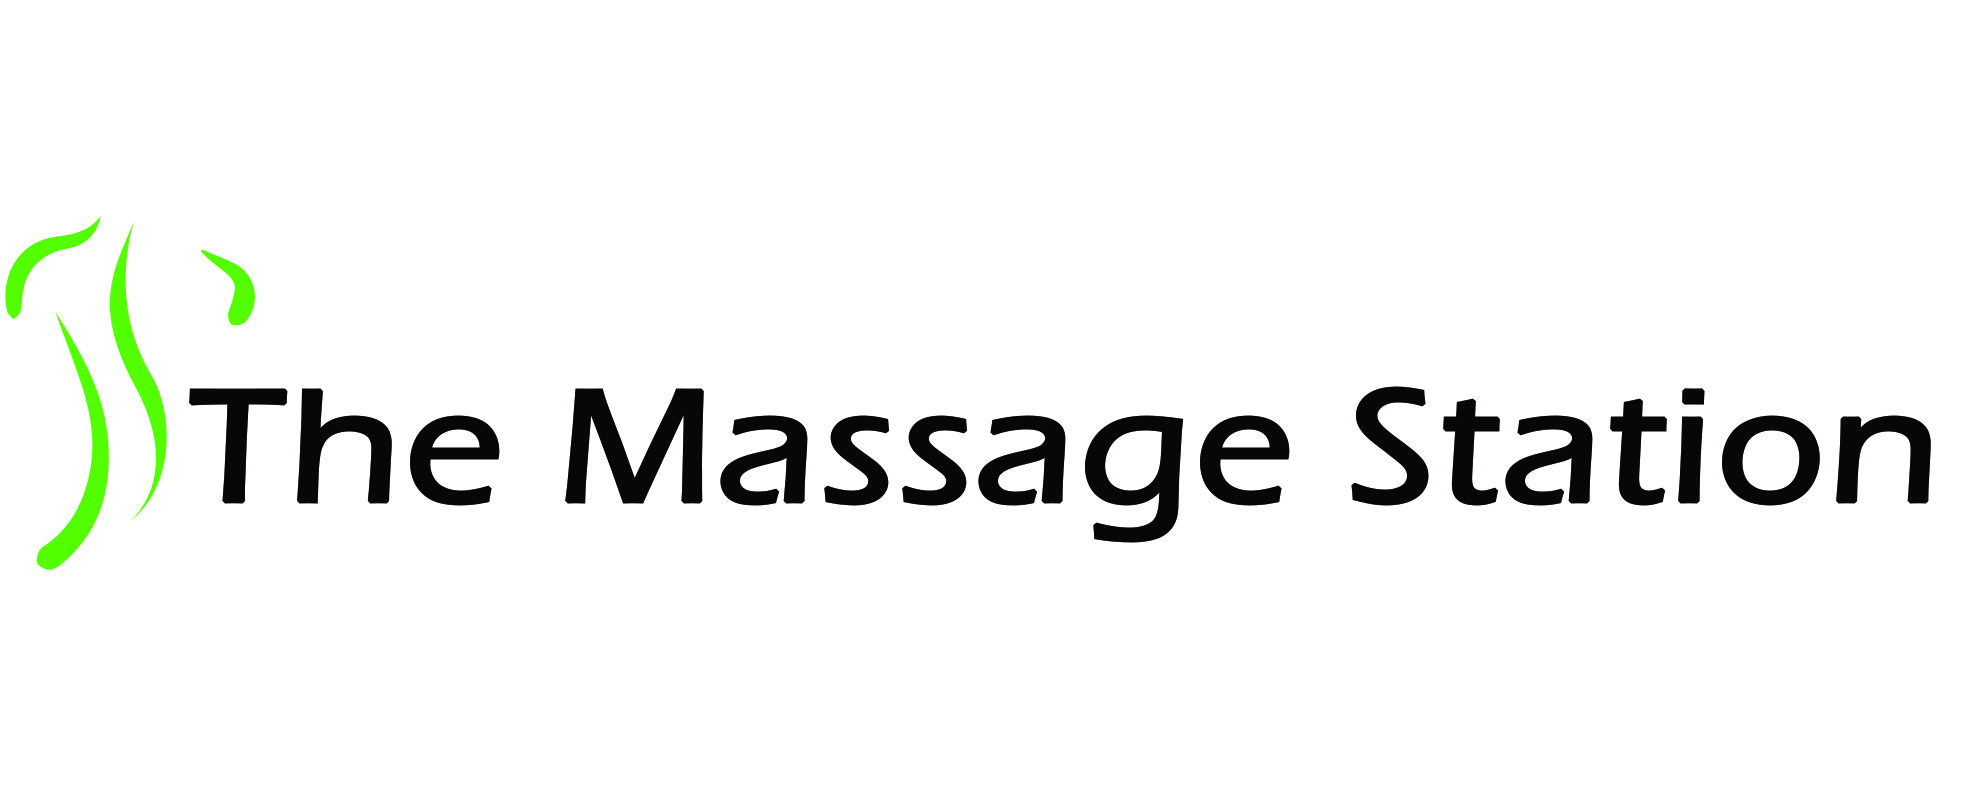 the-massage-station-professional-massage-therapy-greensboro-nc